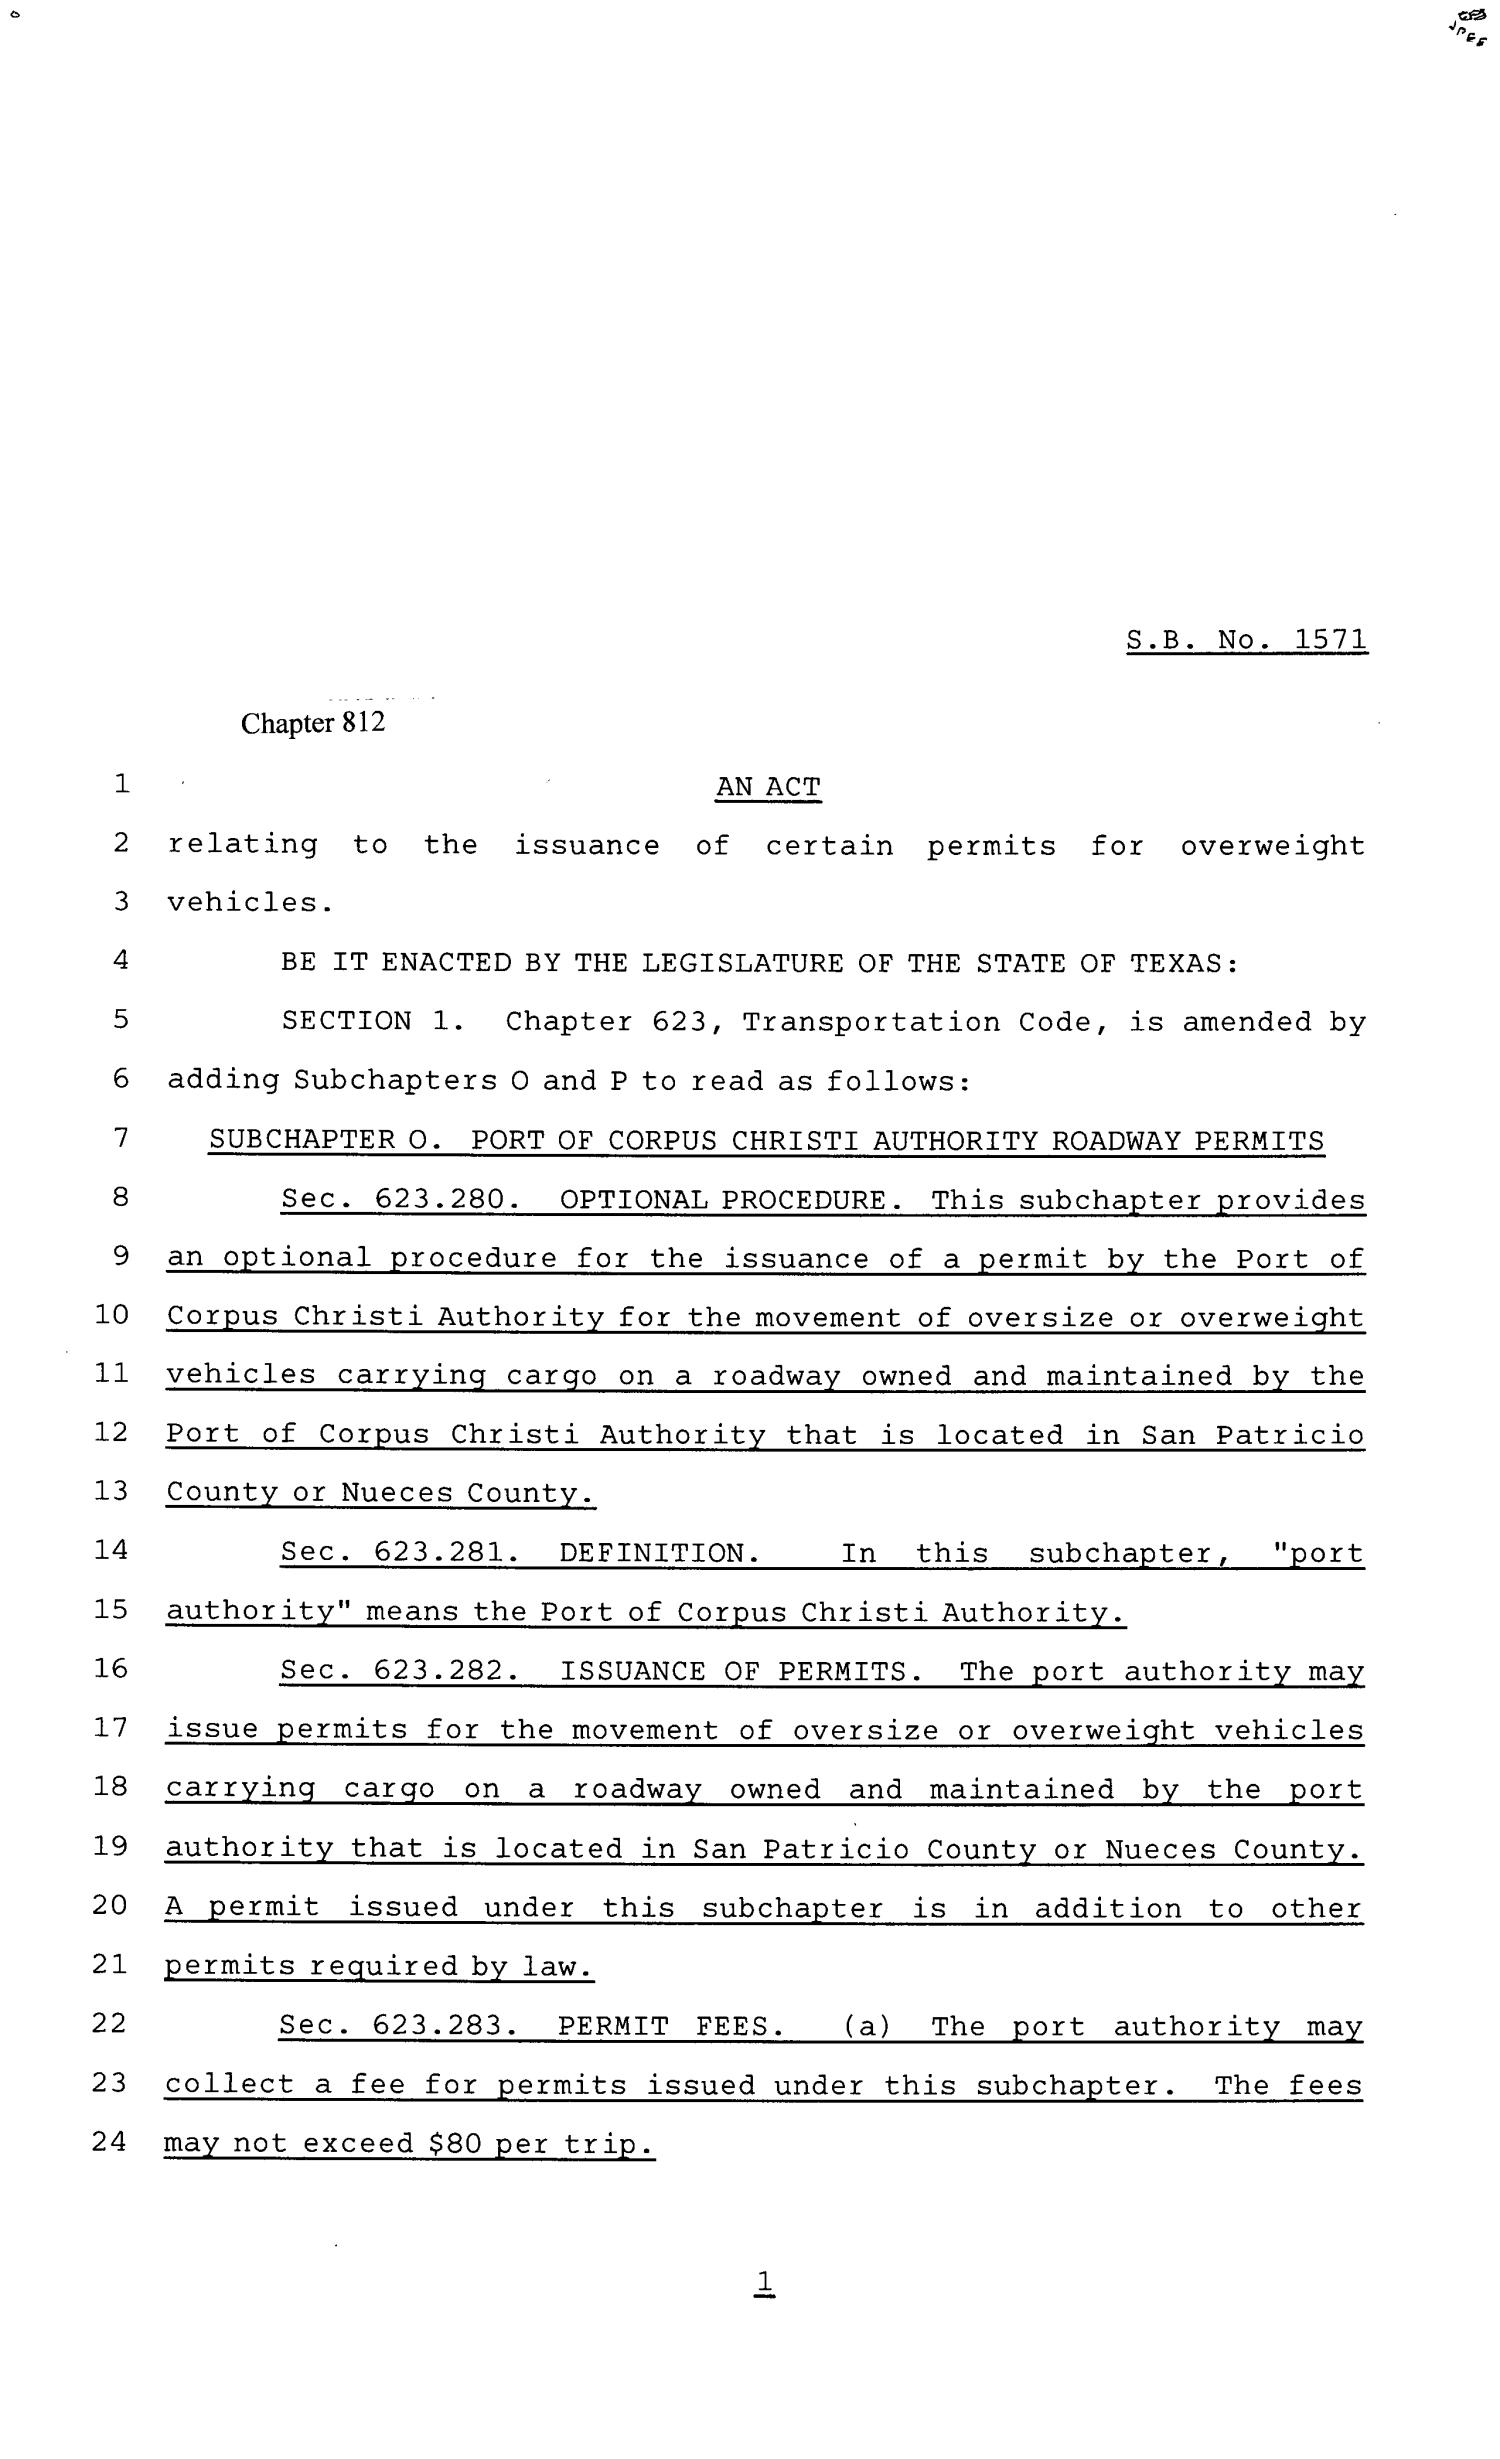 81st Texas Legislature, Senate Bill 1571, Chapter 812                                                                                                      [Sequence #]: 1 of 6